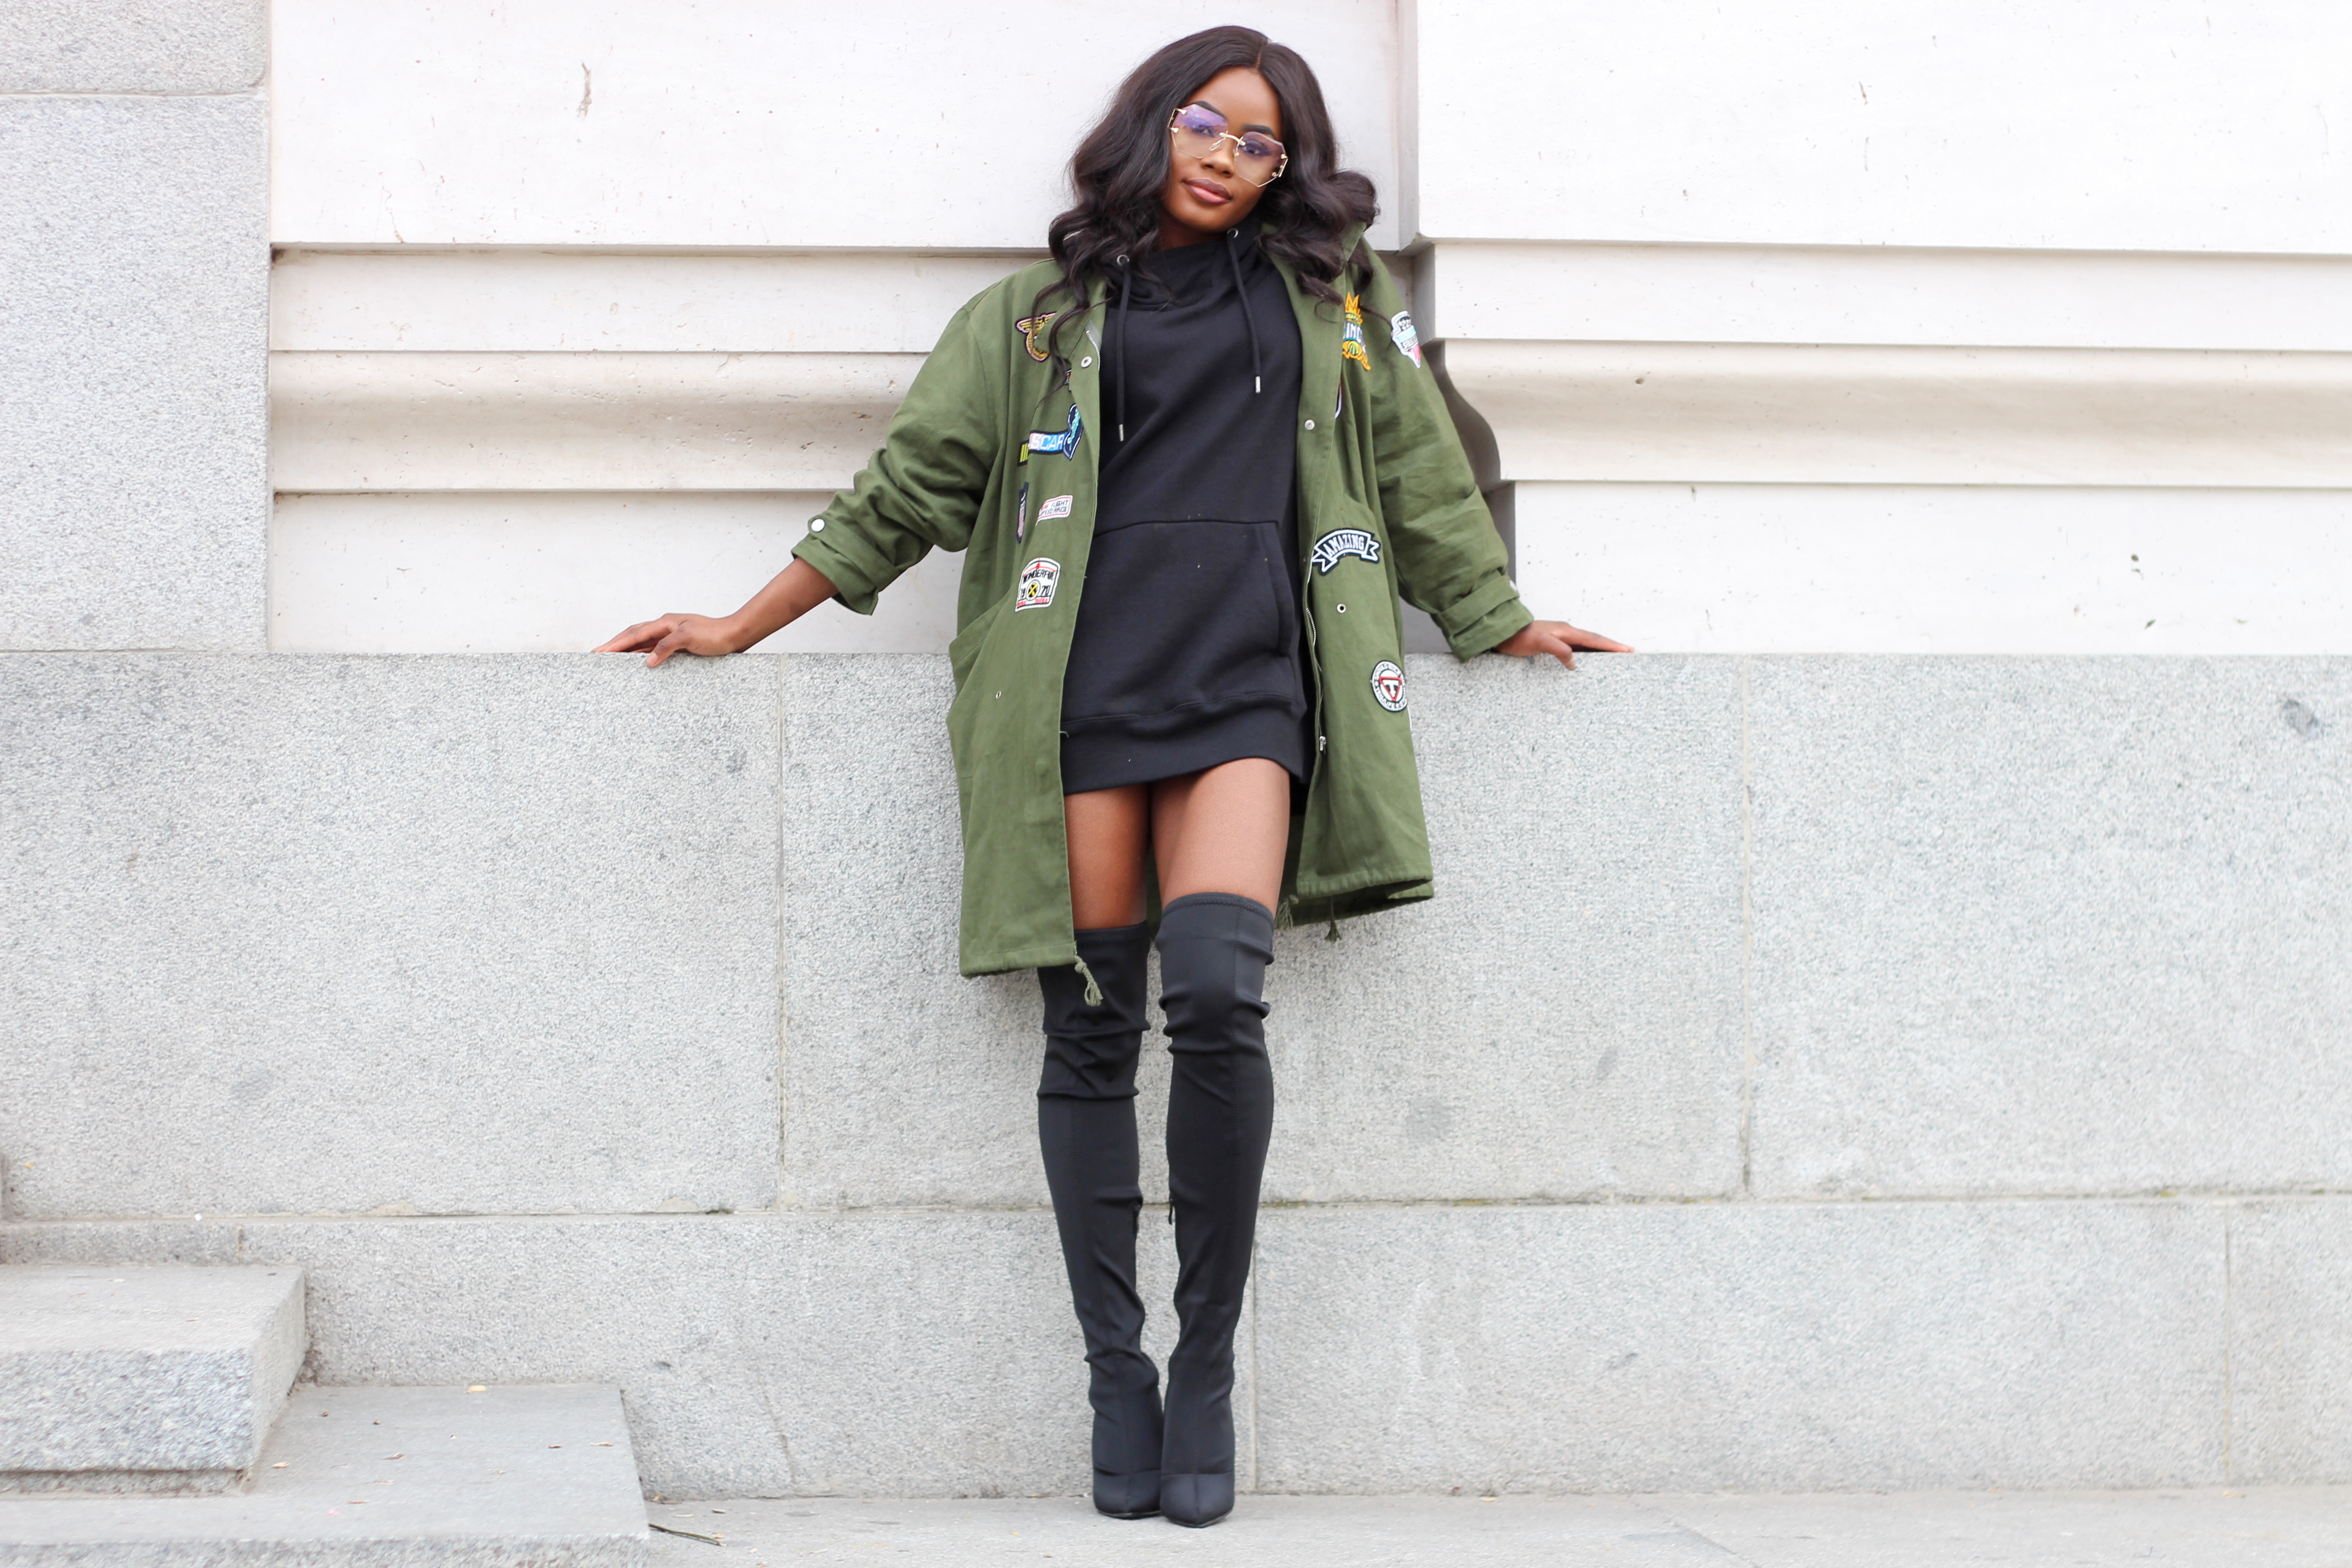 Billykiss Azeez. Your Favourite Muse. Fashion Irish Blogger. African Blogger. Street style. Lasula Miltary Jacket. Bershka Black Oversized Hoodie. Lasula Over-knee Boots. Casual Look. High Fashion. A/W 16.